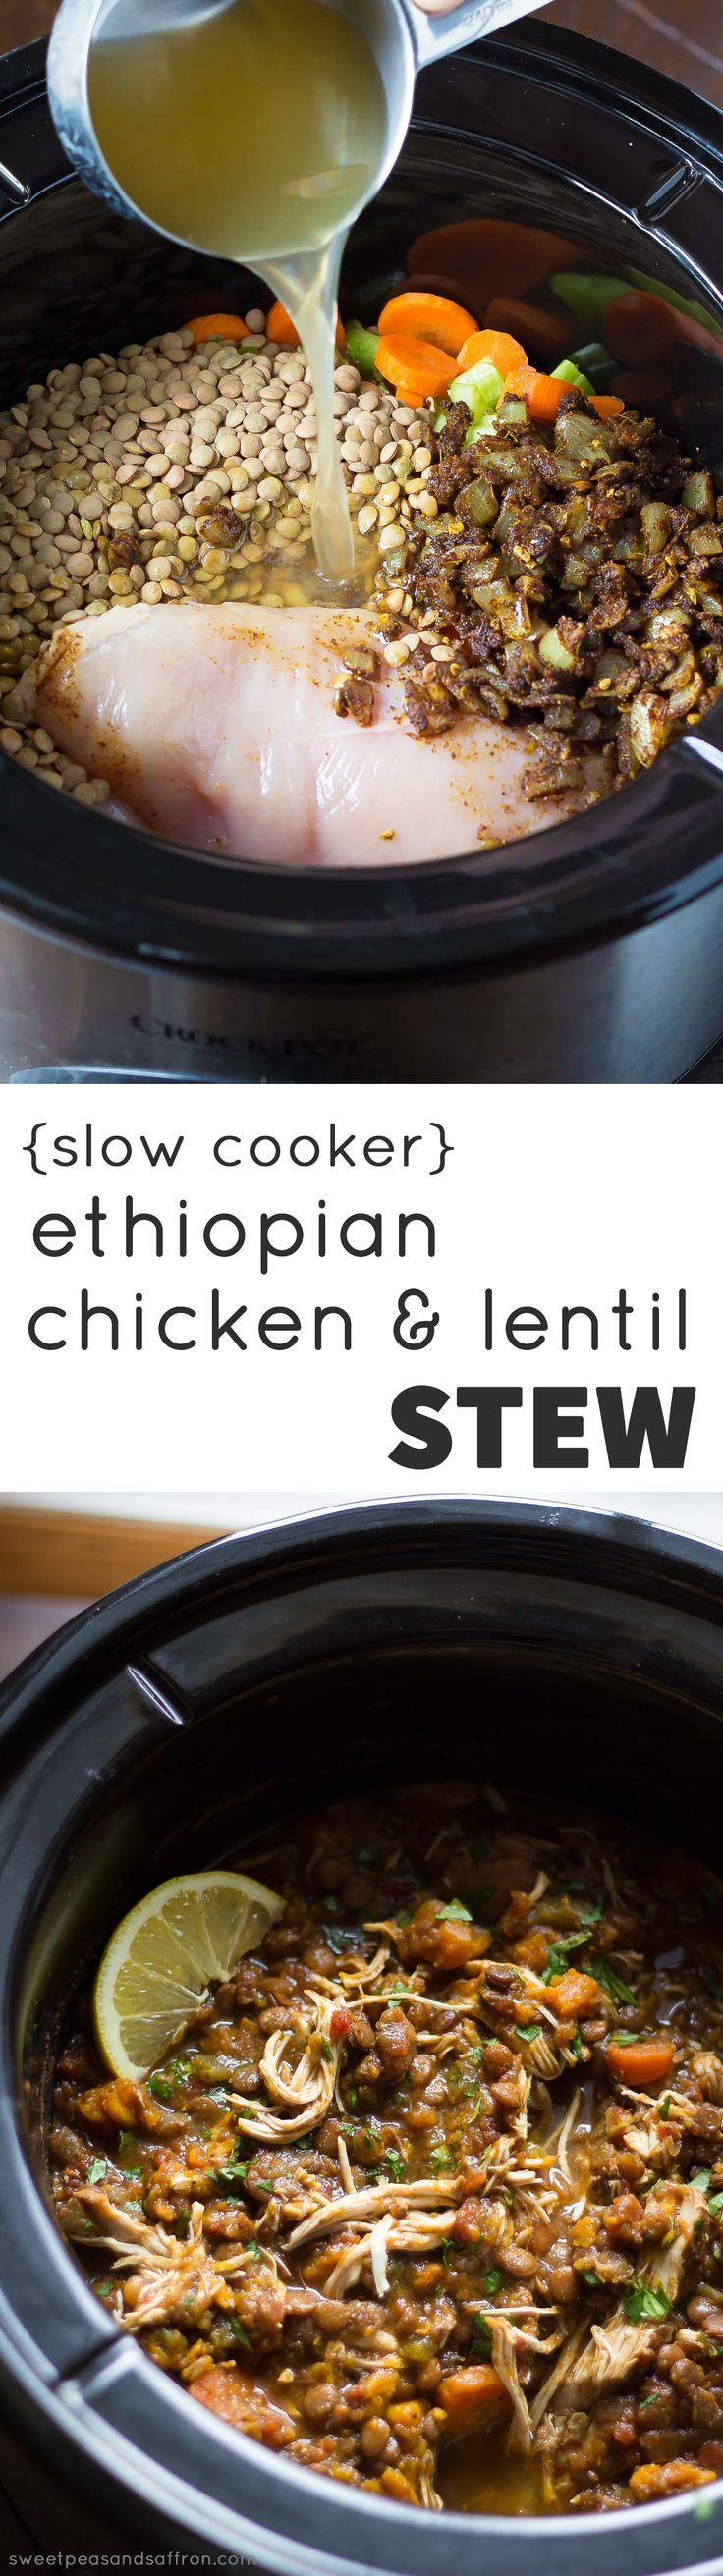 Slow Cooker Chicken & Lentil Ethiopian Stew, made with sweet potatoes and carrots. Great Recipe!